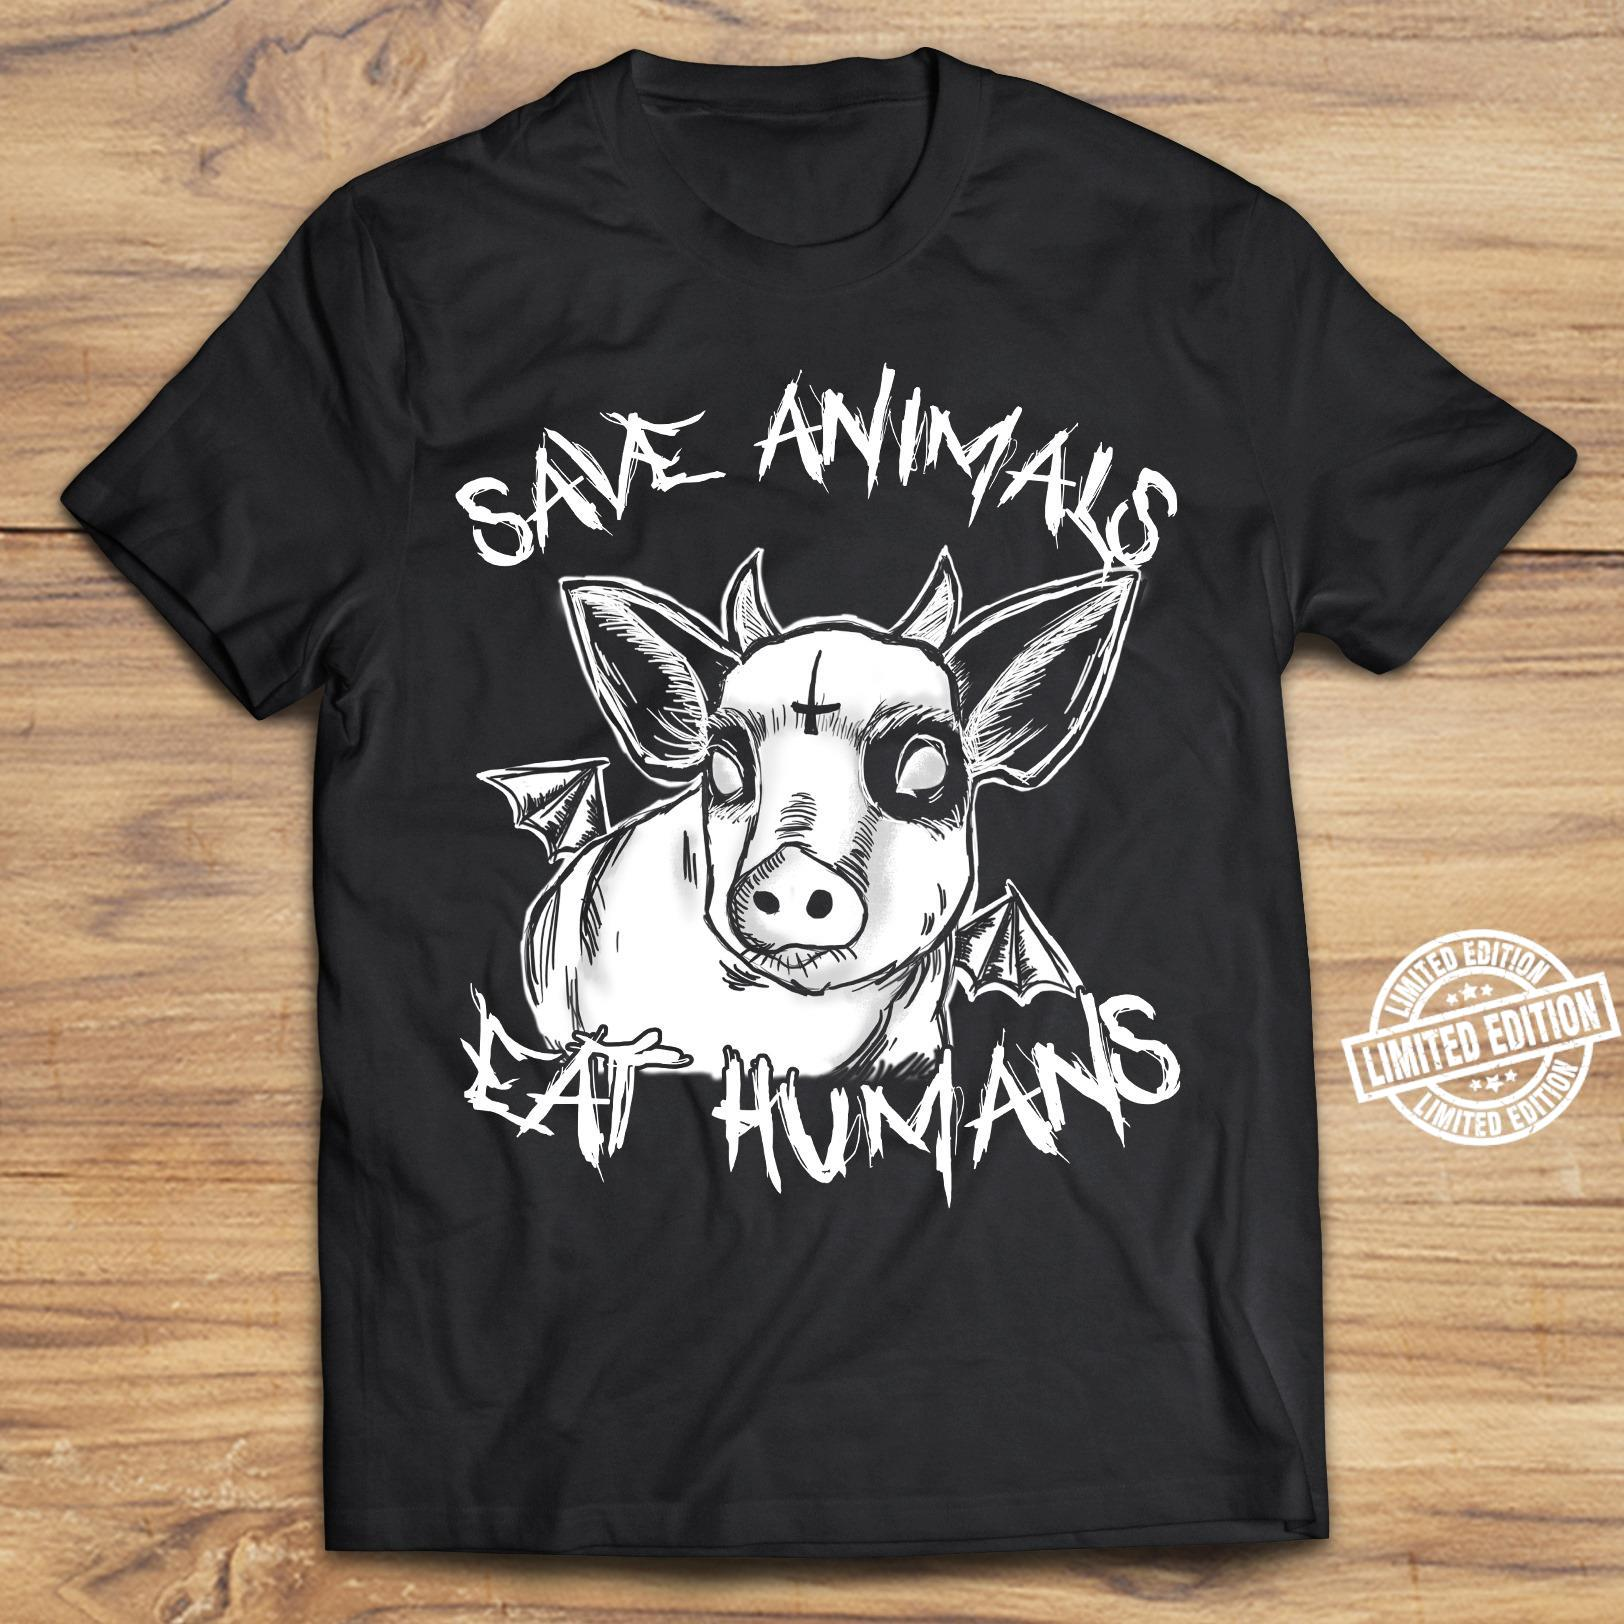 Save animals eat humans shirt